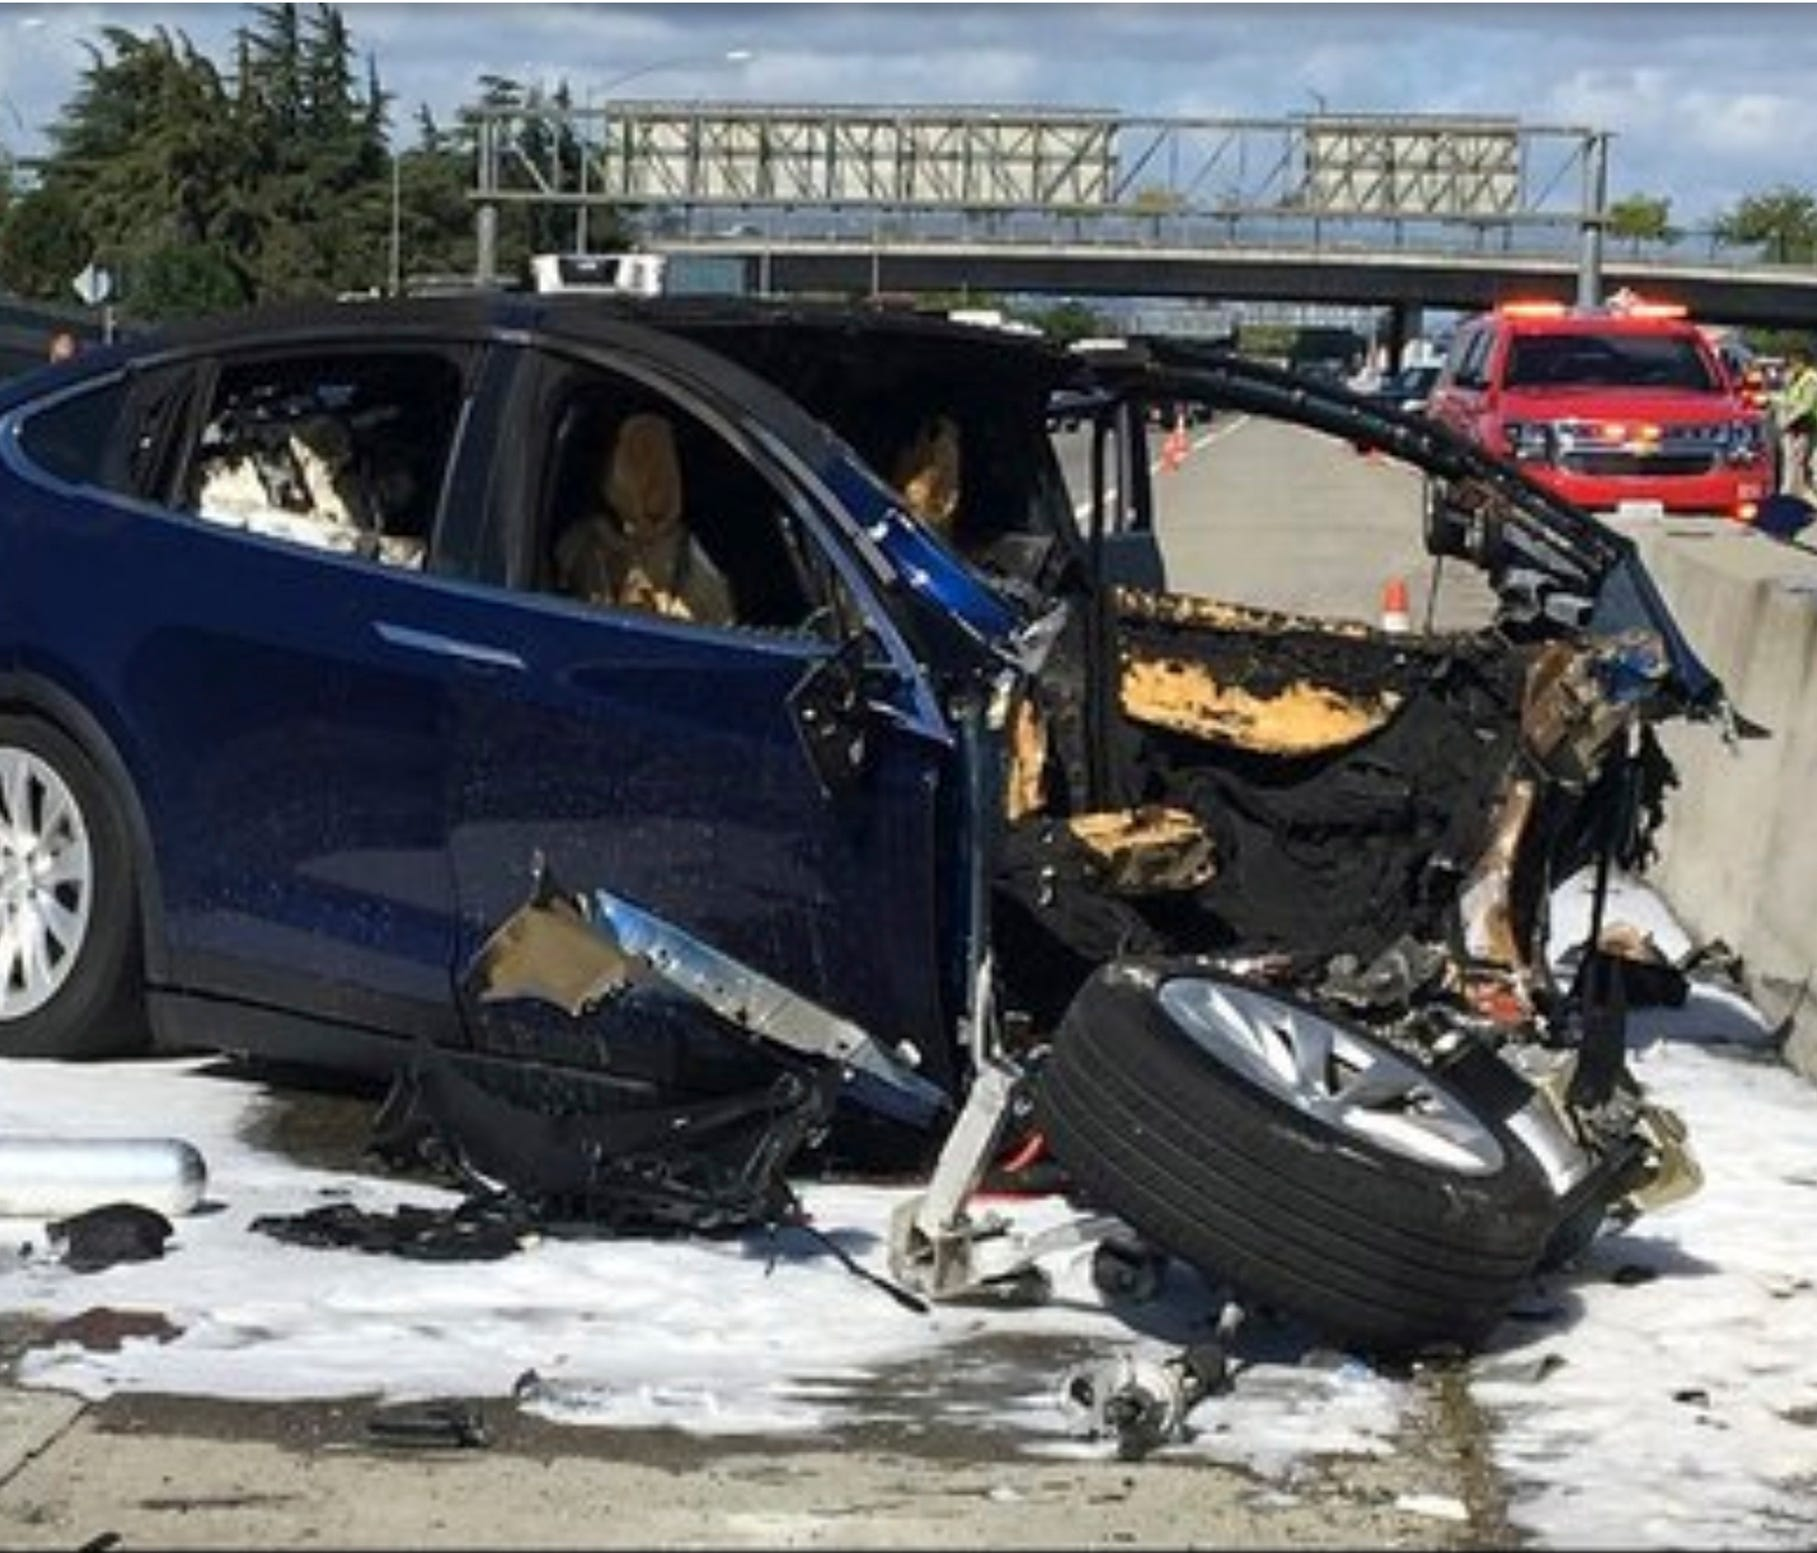 In this Friday March 23, 2018 photo provided by KTVU, emergency personnel work a the scene where a Tesla electric SUV crashed into a barrier on U.S. Highway 101 in Mountain View, Calif. The National Transportation Safety Board has sent two investigat